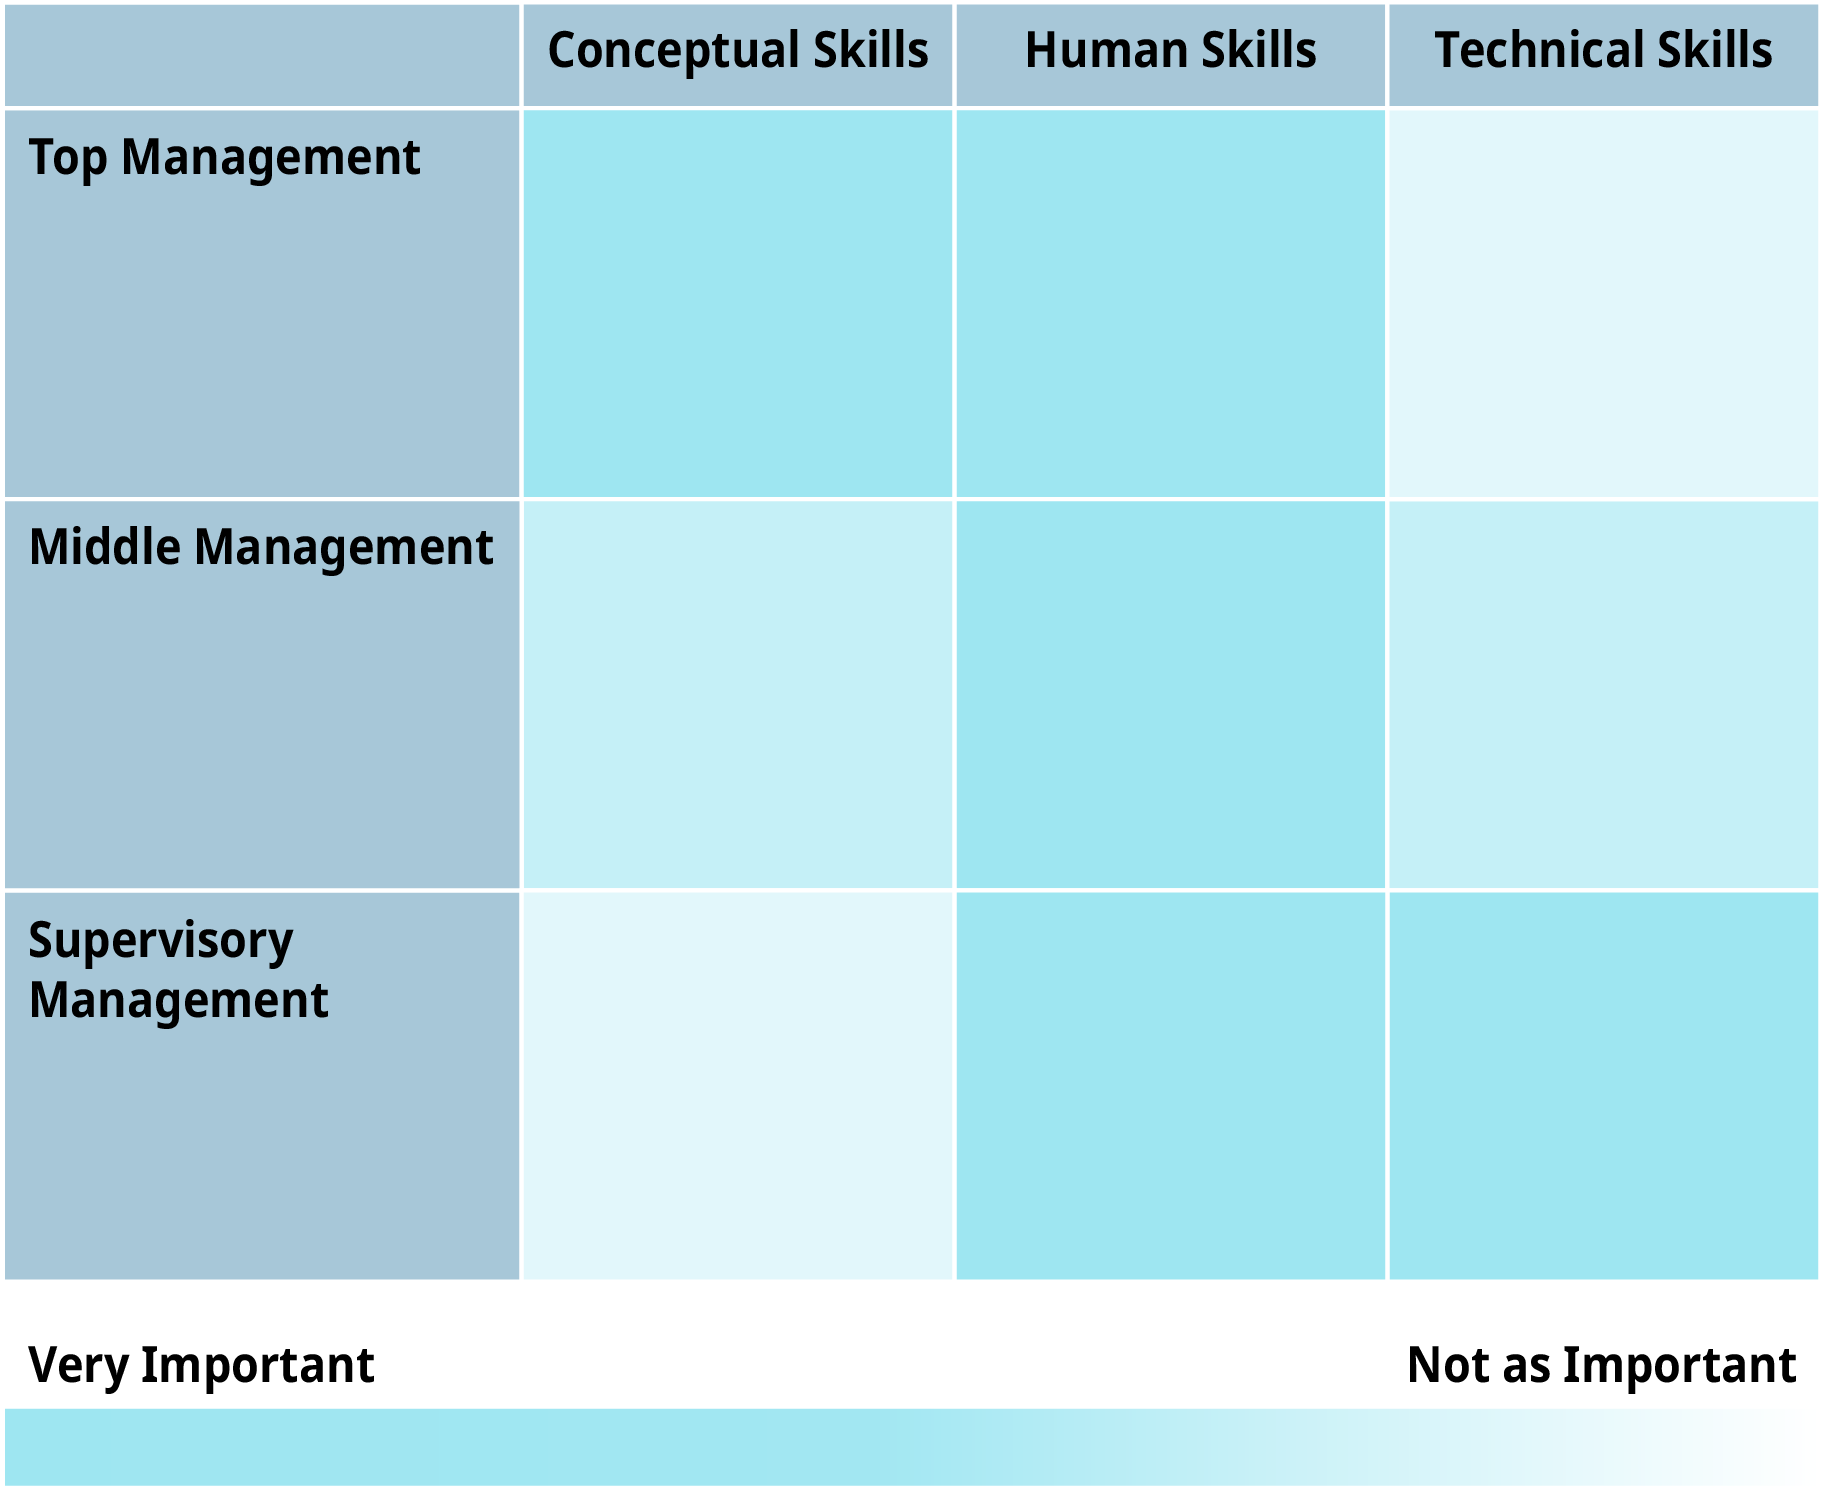 From left to right, the first column is conceptual skills. The second column is human skills. The third column is technical skills. From top to bottom, the first row is top management. The second row is middle management. The bottom row is supervisory management. At the bottom of the table, at the left hand side, is labeled as very important. On the bottom of the right side of the table is labeled as not as important.